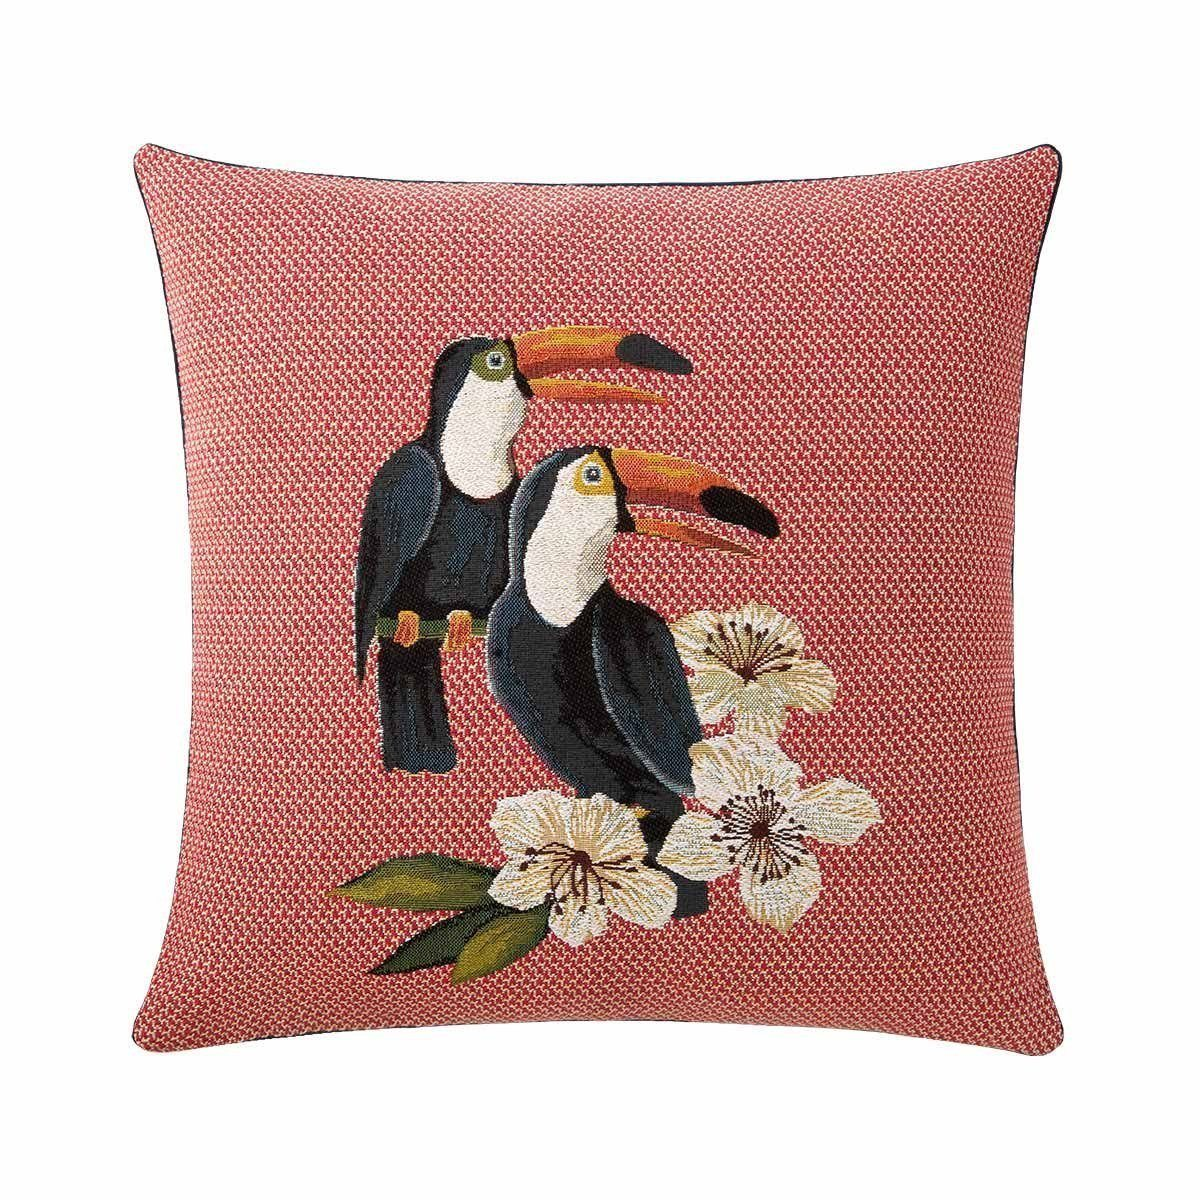 Tuk Goyave Decorative Pillow by Iosis